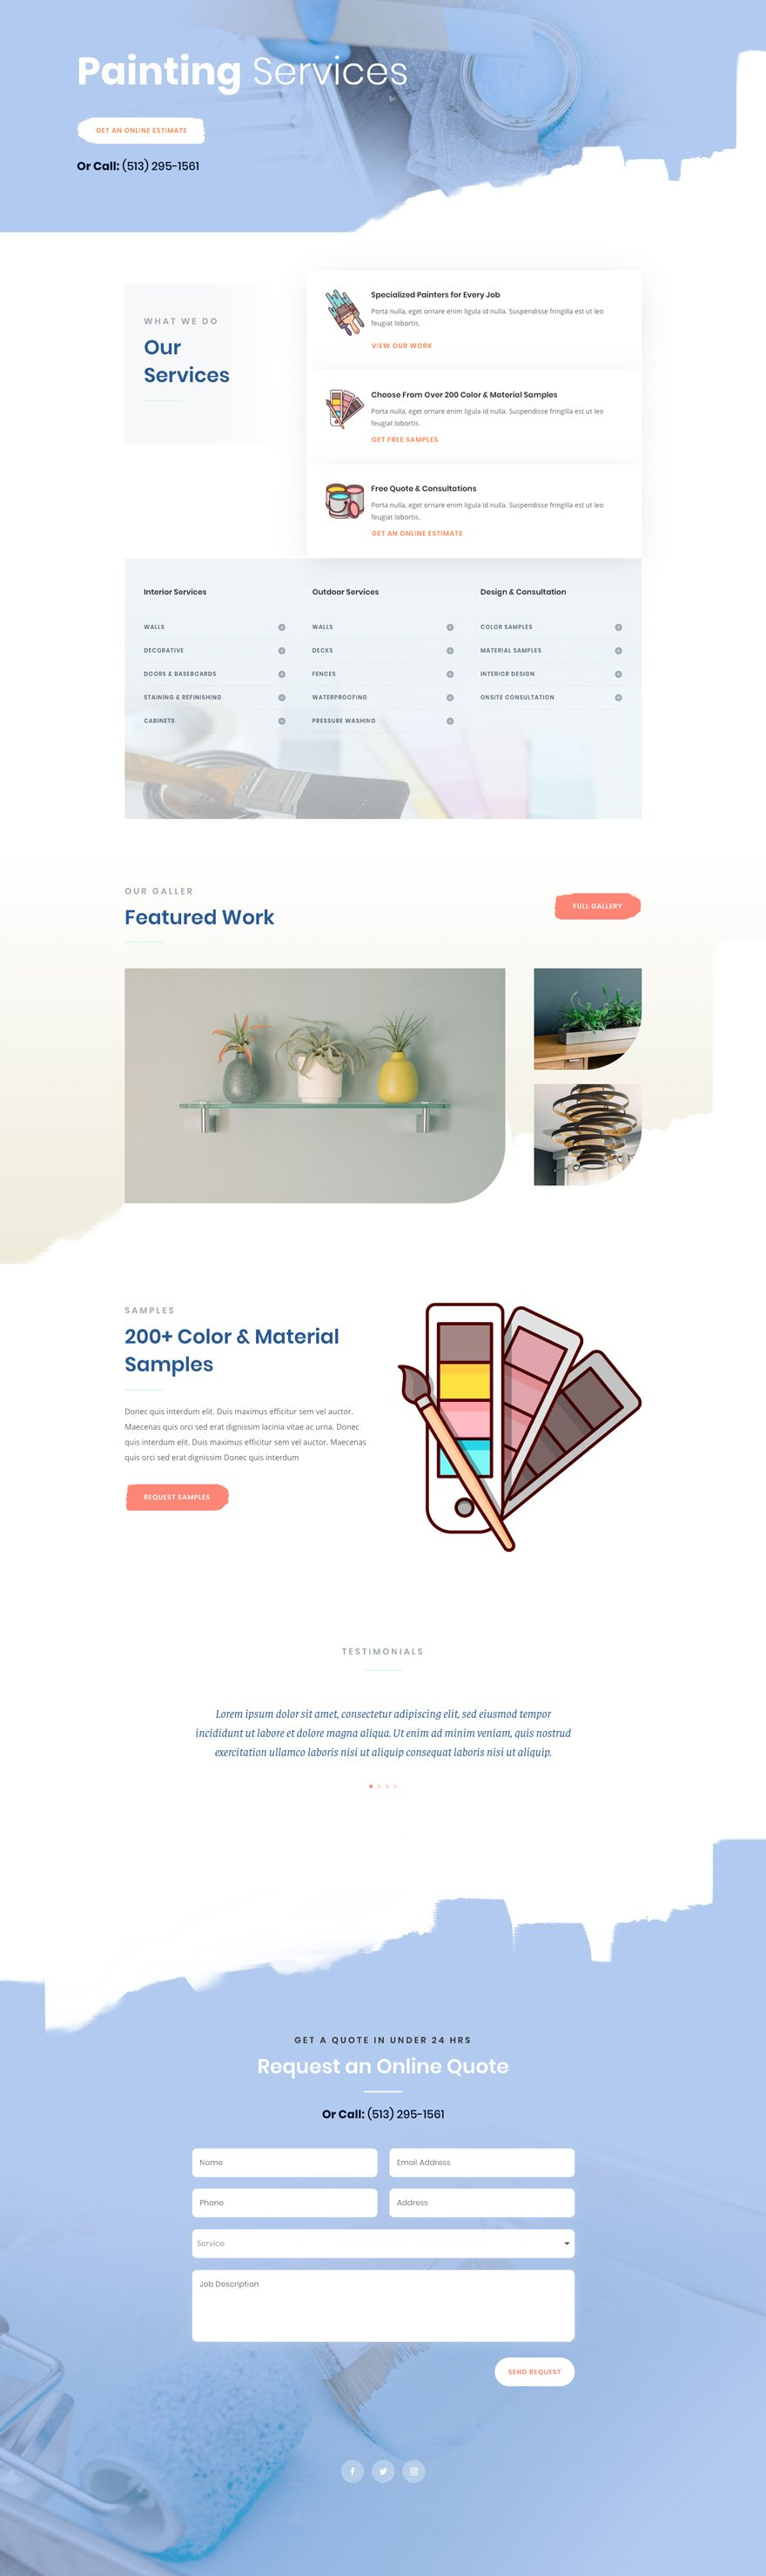 divi painting service layout pack